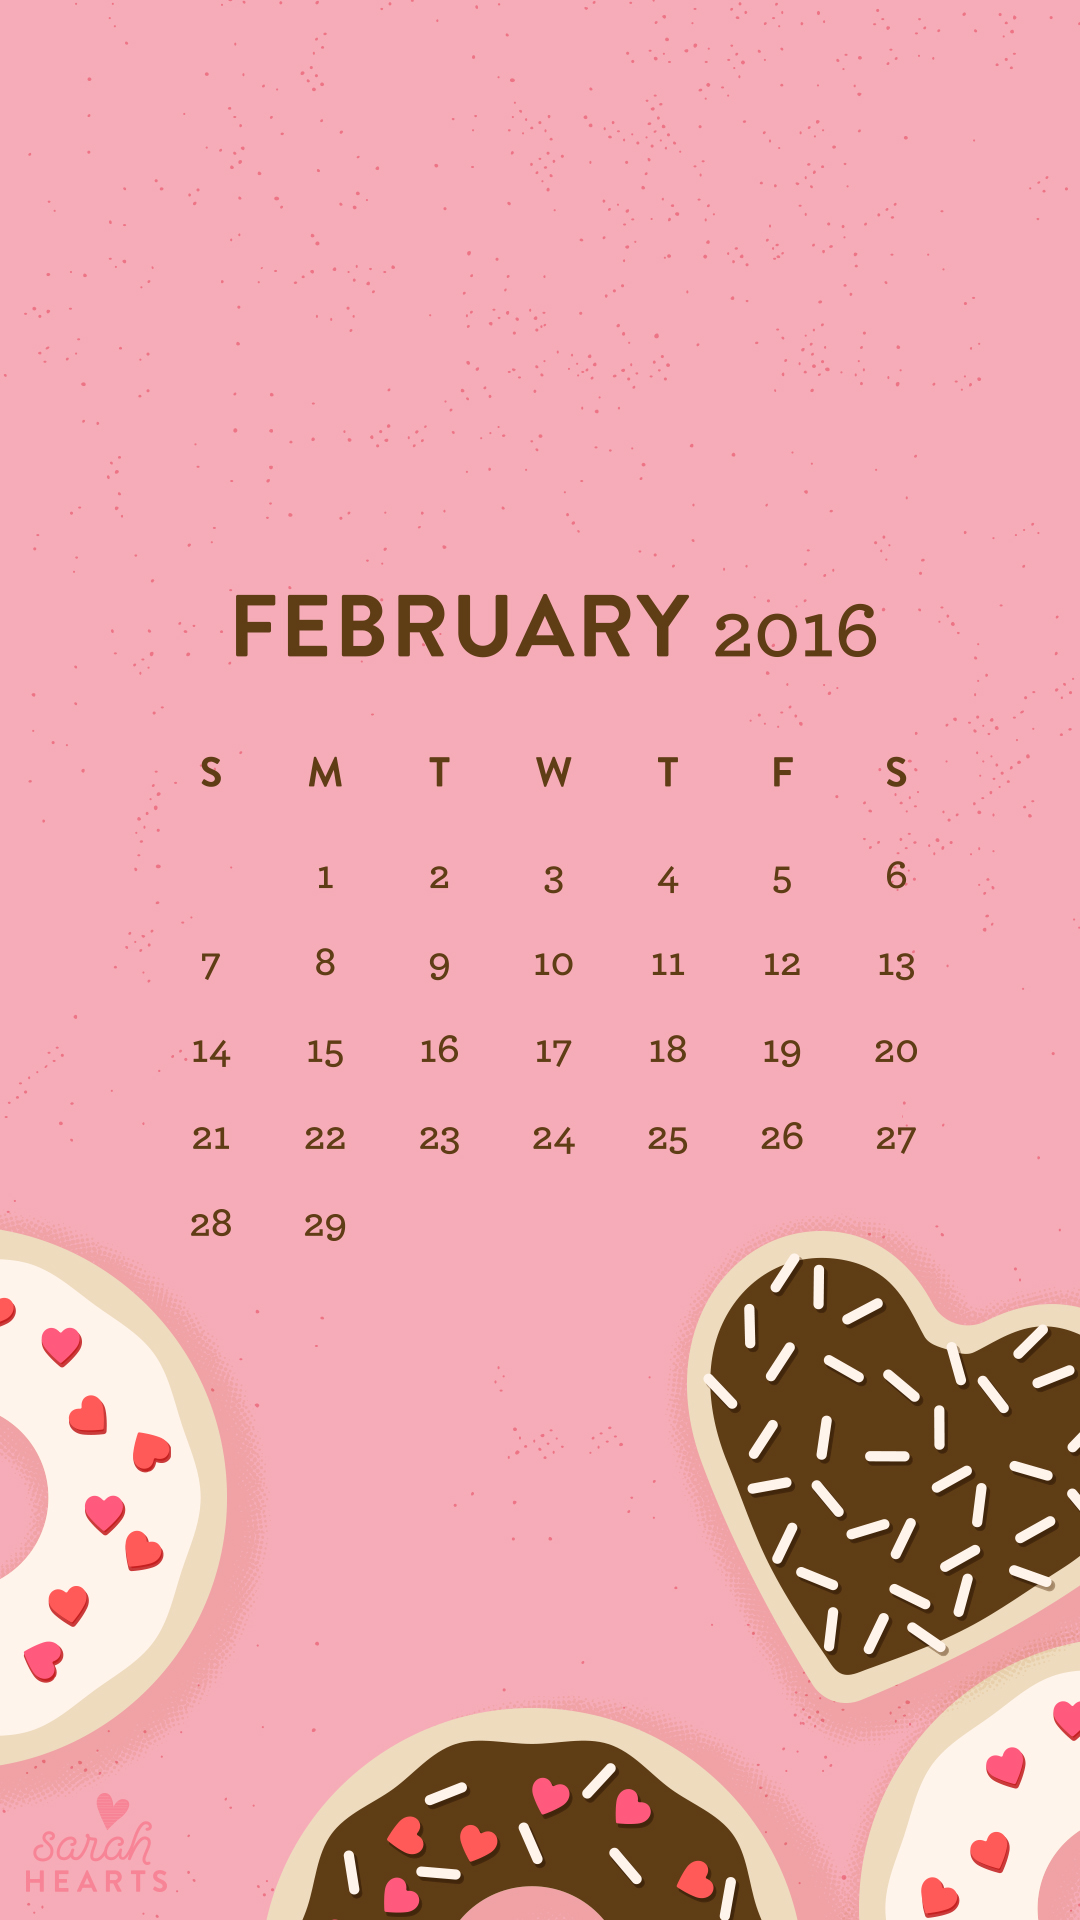 Cute Quote Desktop Wallpaper February 2016 Calendar Wallpaper Sarah Hearts